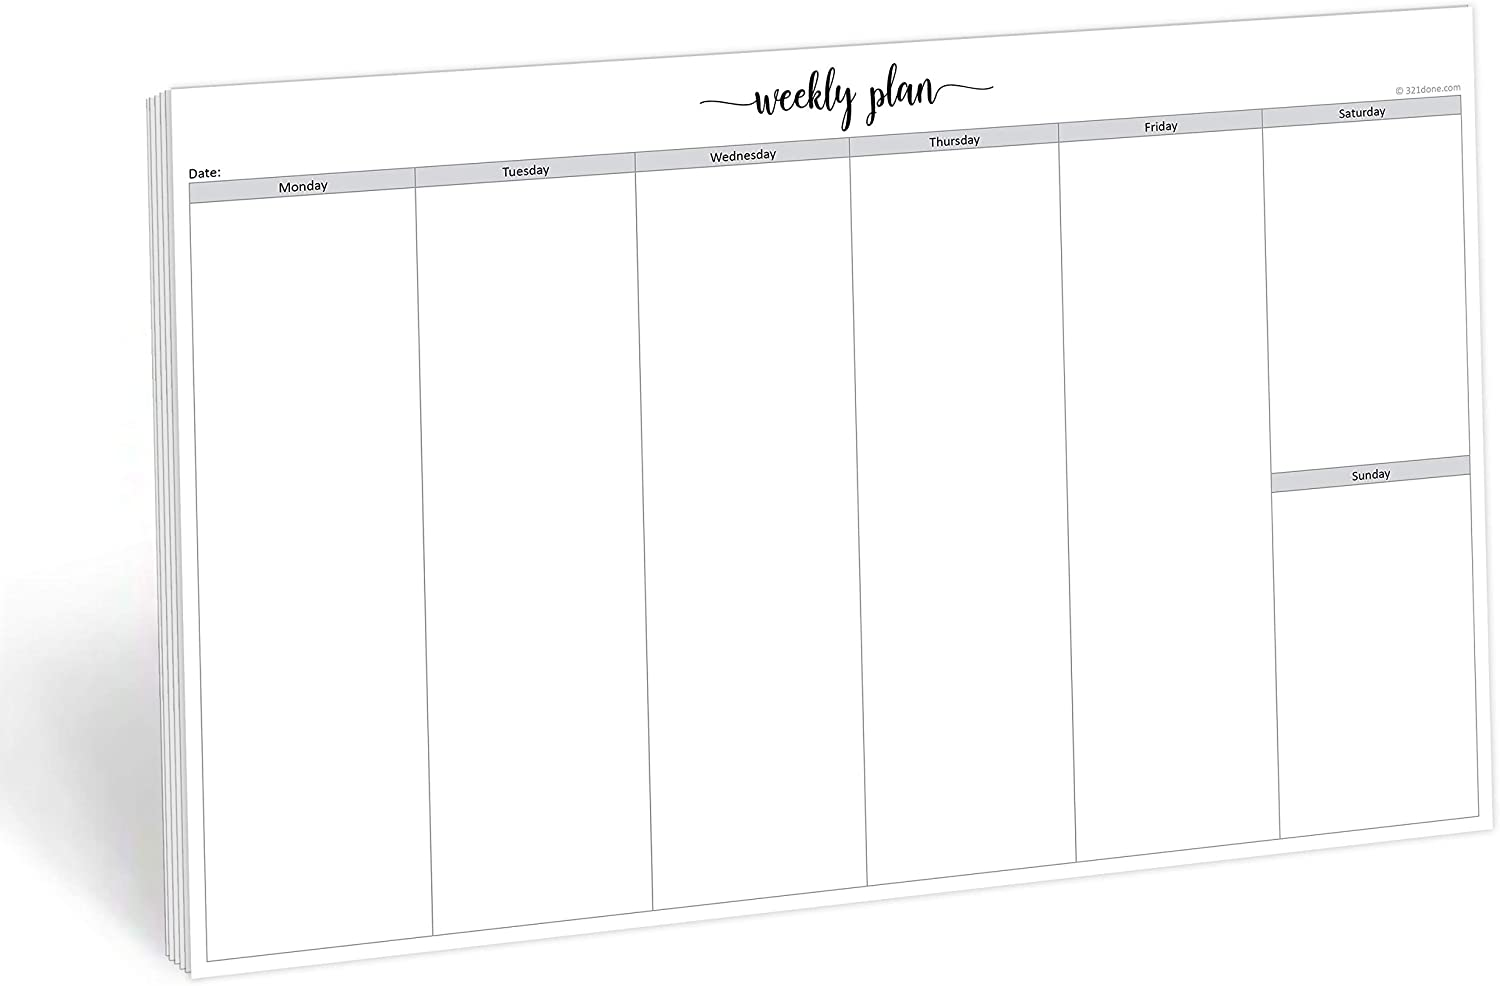 321Done Jumbo Weekly Planning Desktop Notepad - 50 Sheets (11